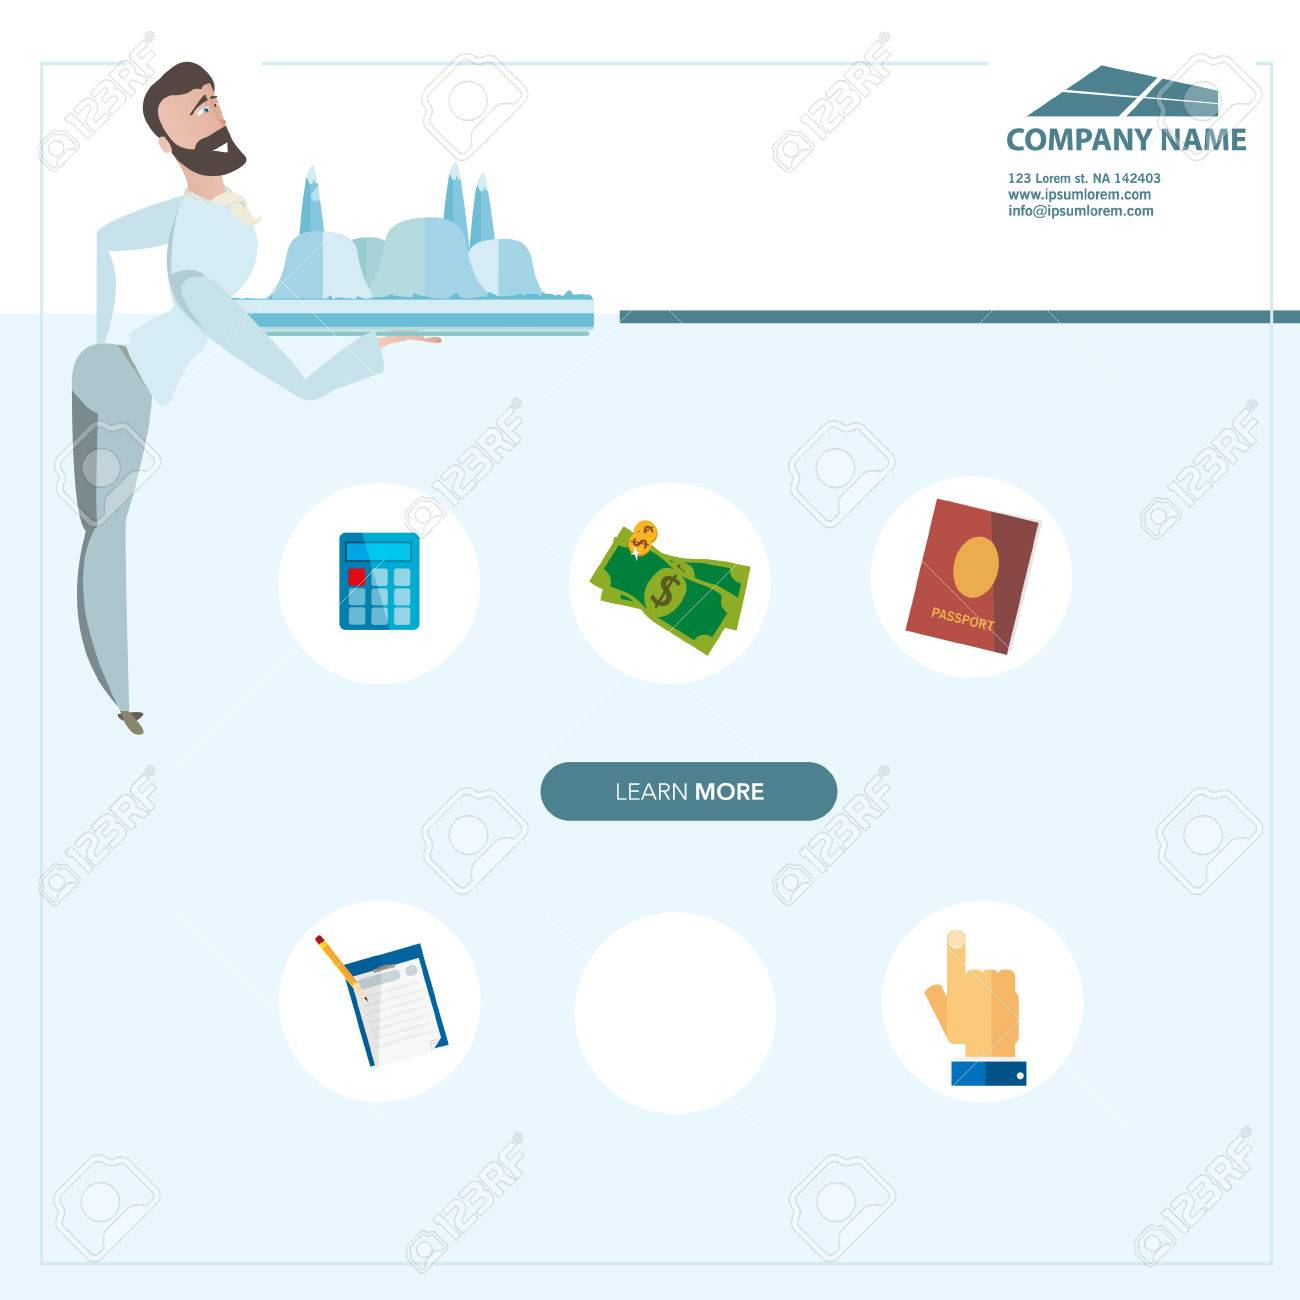 Creative Landing Page Web Site Design Vector Illustration Can Be Use For Travel Agency Advertising